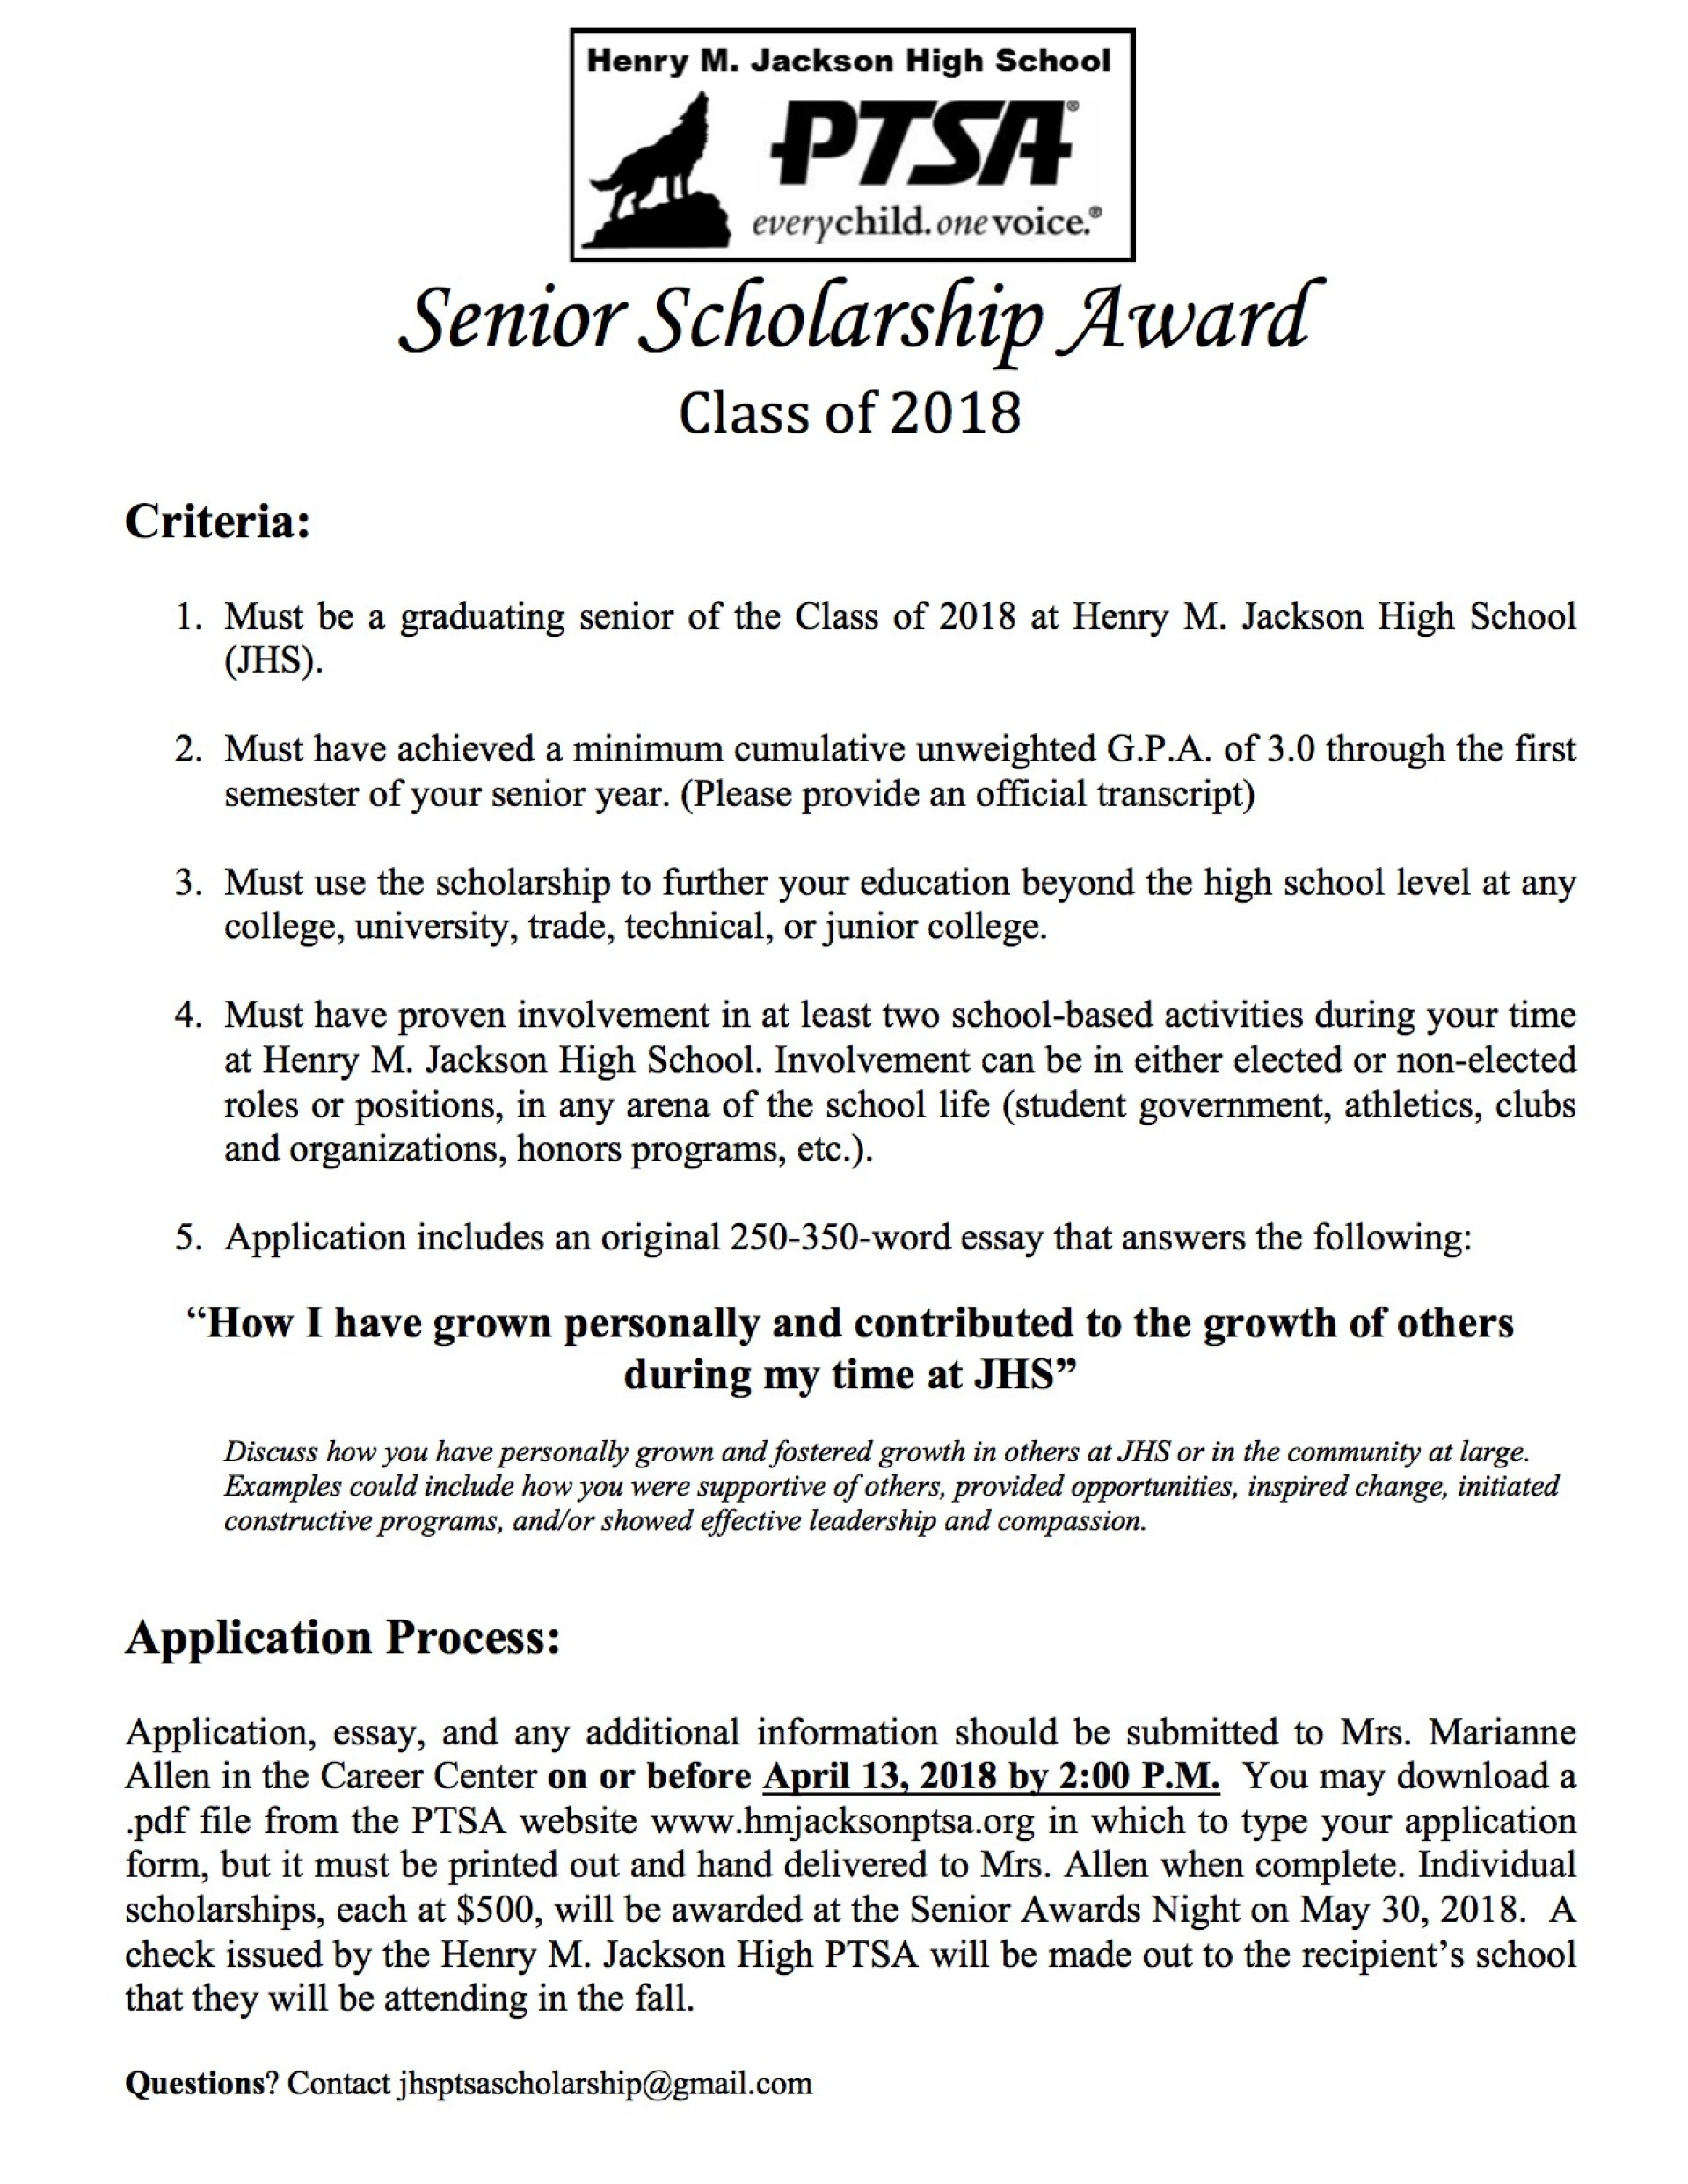 007 Senior Scholarships Henry M Jackson Ptsa No Essay For College Students Scholarship Application 201 With Unbelievable Without Essays Required 2017 1920